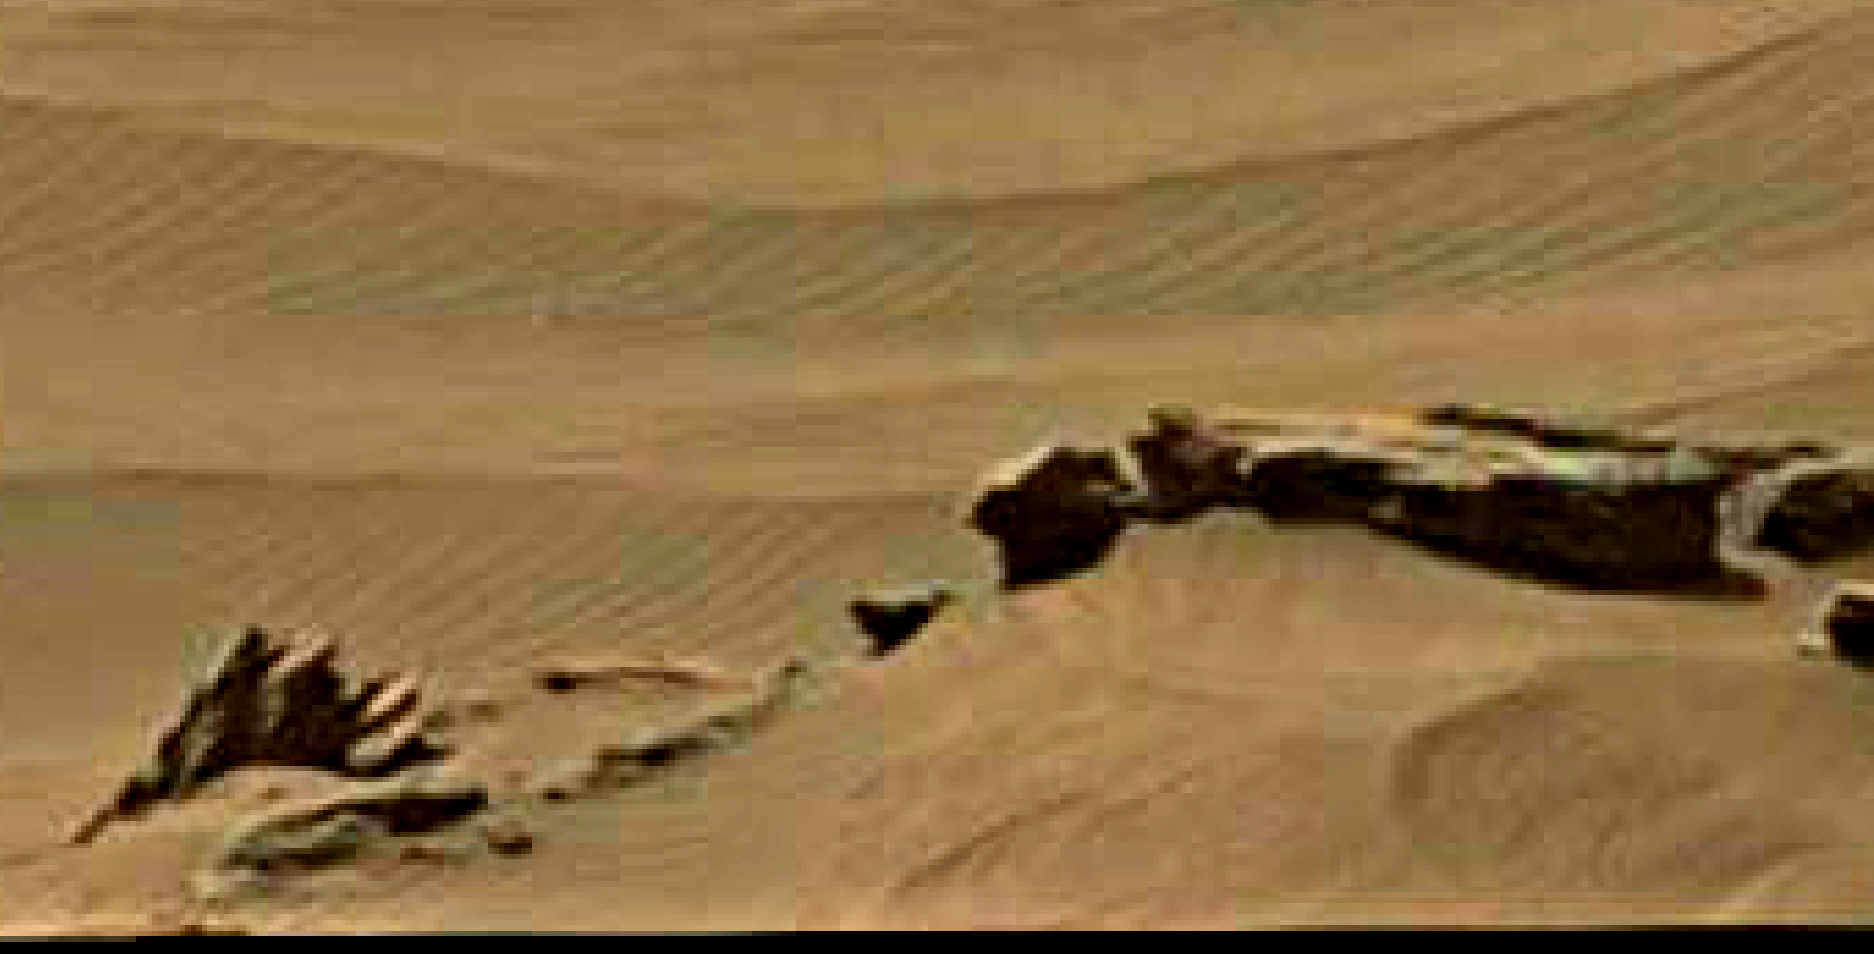 mars sol 1344 anomaly-artifacts 8 was life on mars